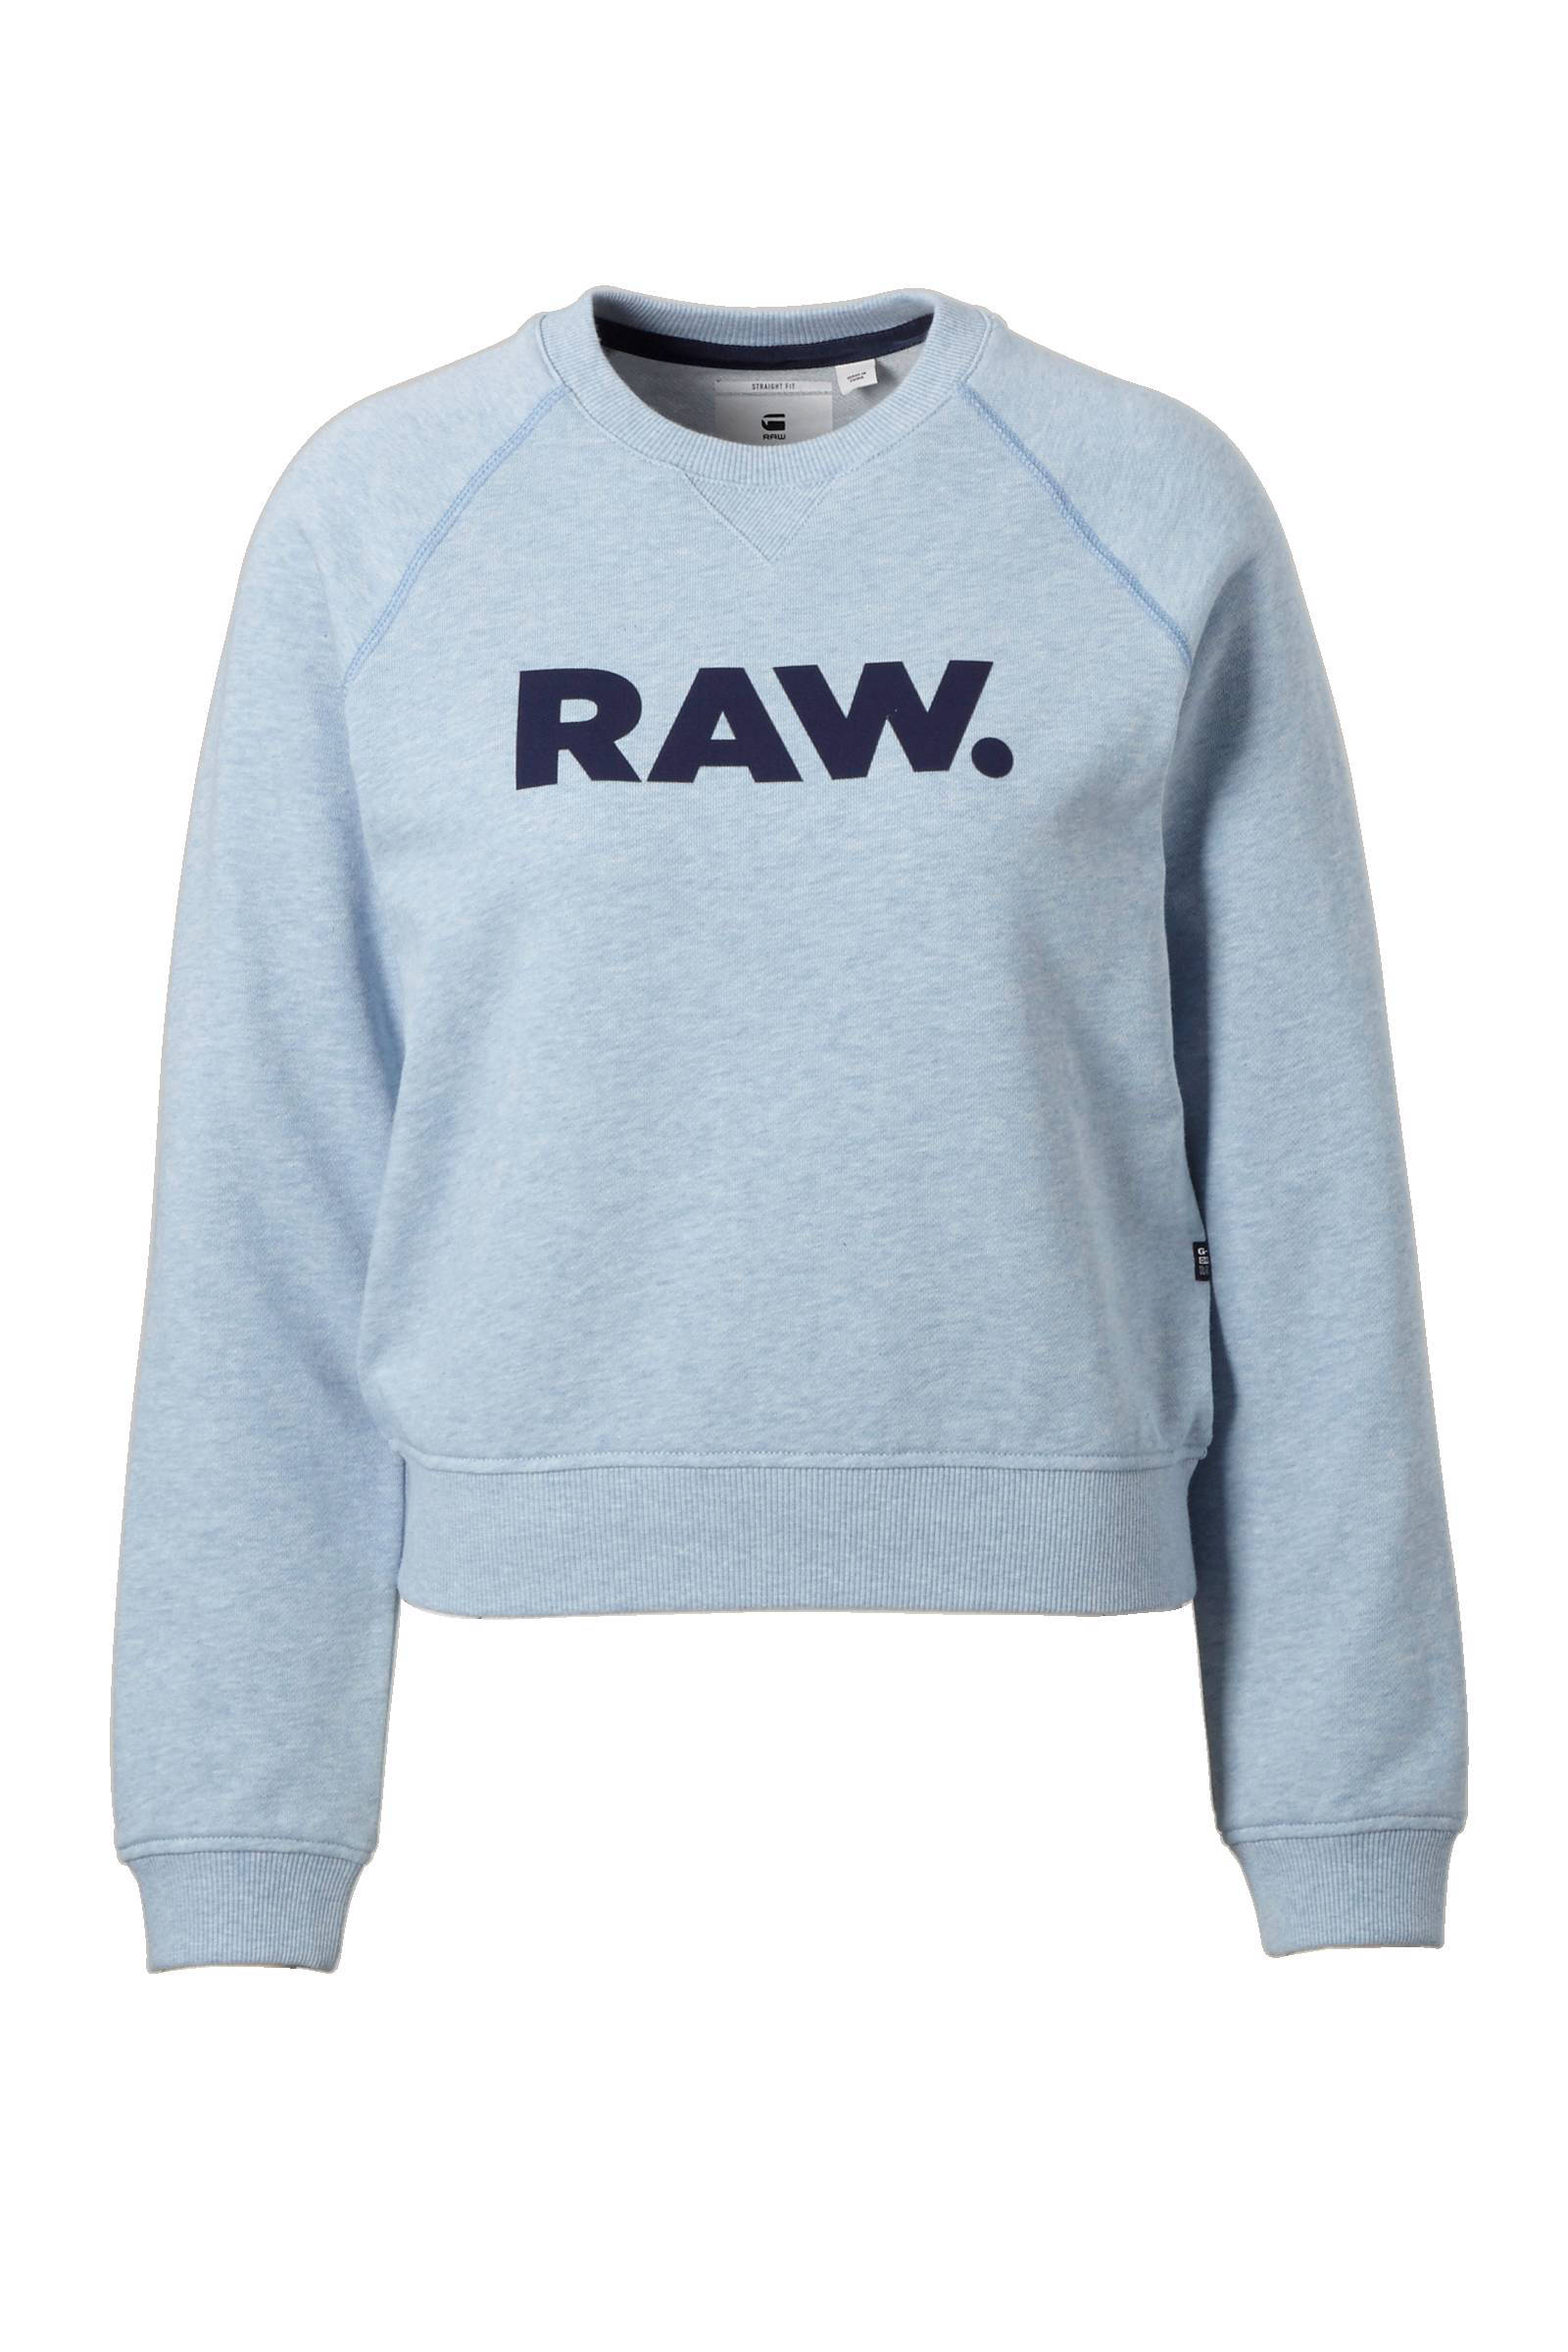 Lichtblauwe Trui Dames.G Star Raw Xula Art Straight Sweater Wehkamp